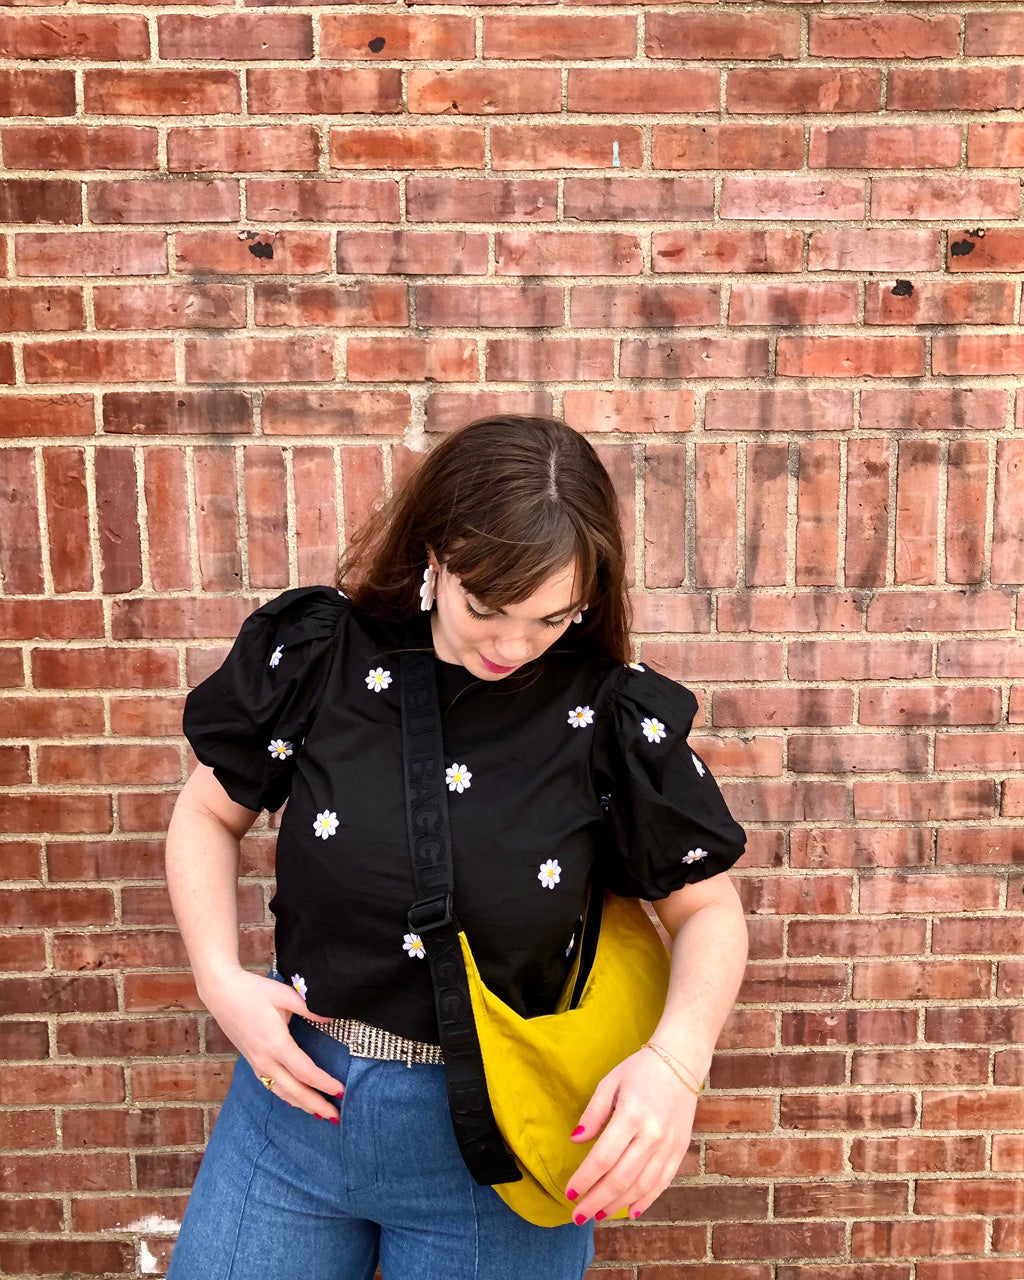 model wearing black blouse with daisy embroidered detail with blue jeans and yellow cross bag